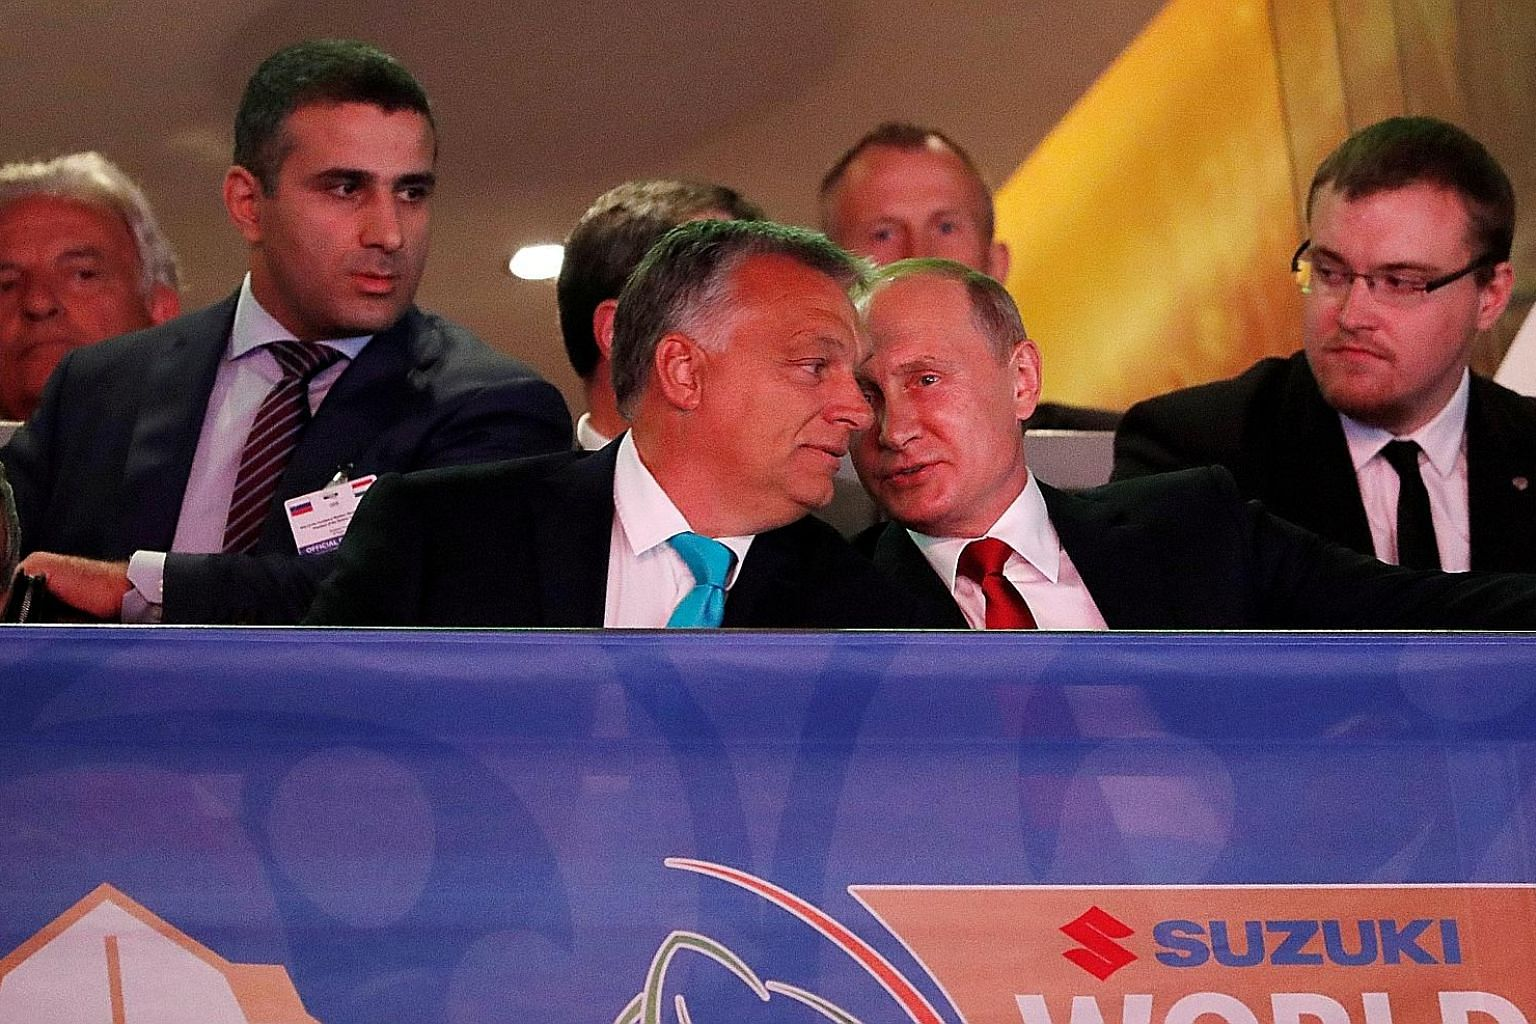 Russian President Vladimir Putin (right) talking to Hungarian Prime Minister Viktor Orban at a judo championship in Budapest last year. Mr Orban is an outspoken opponent of continued Western sanctions against Russia and has expressed open admiration